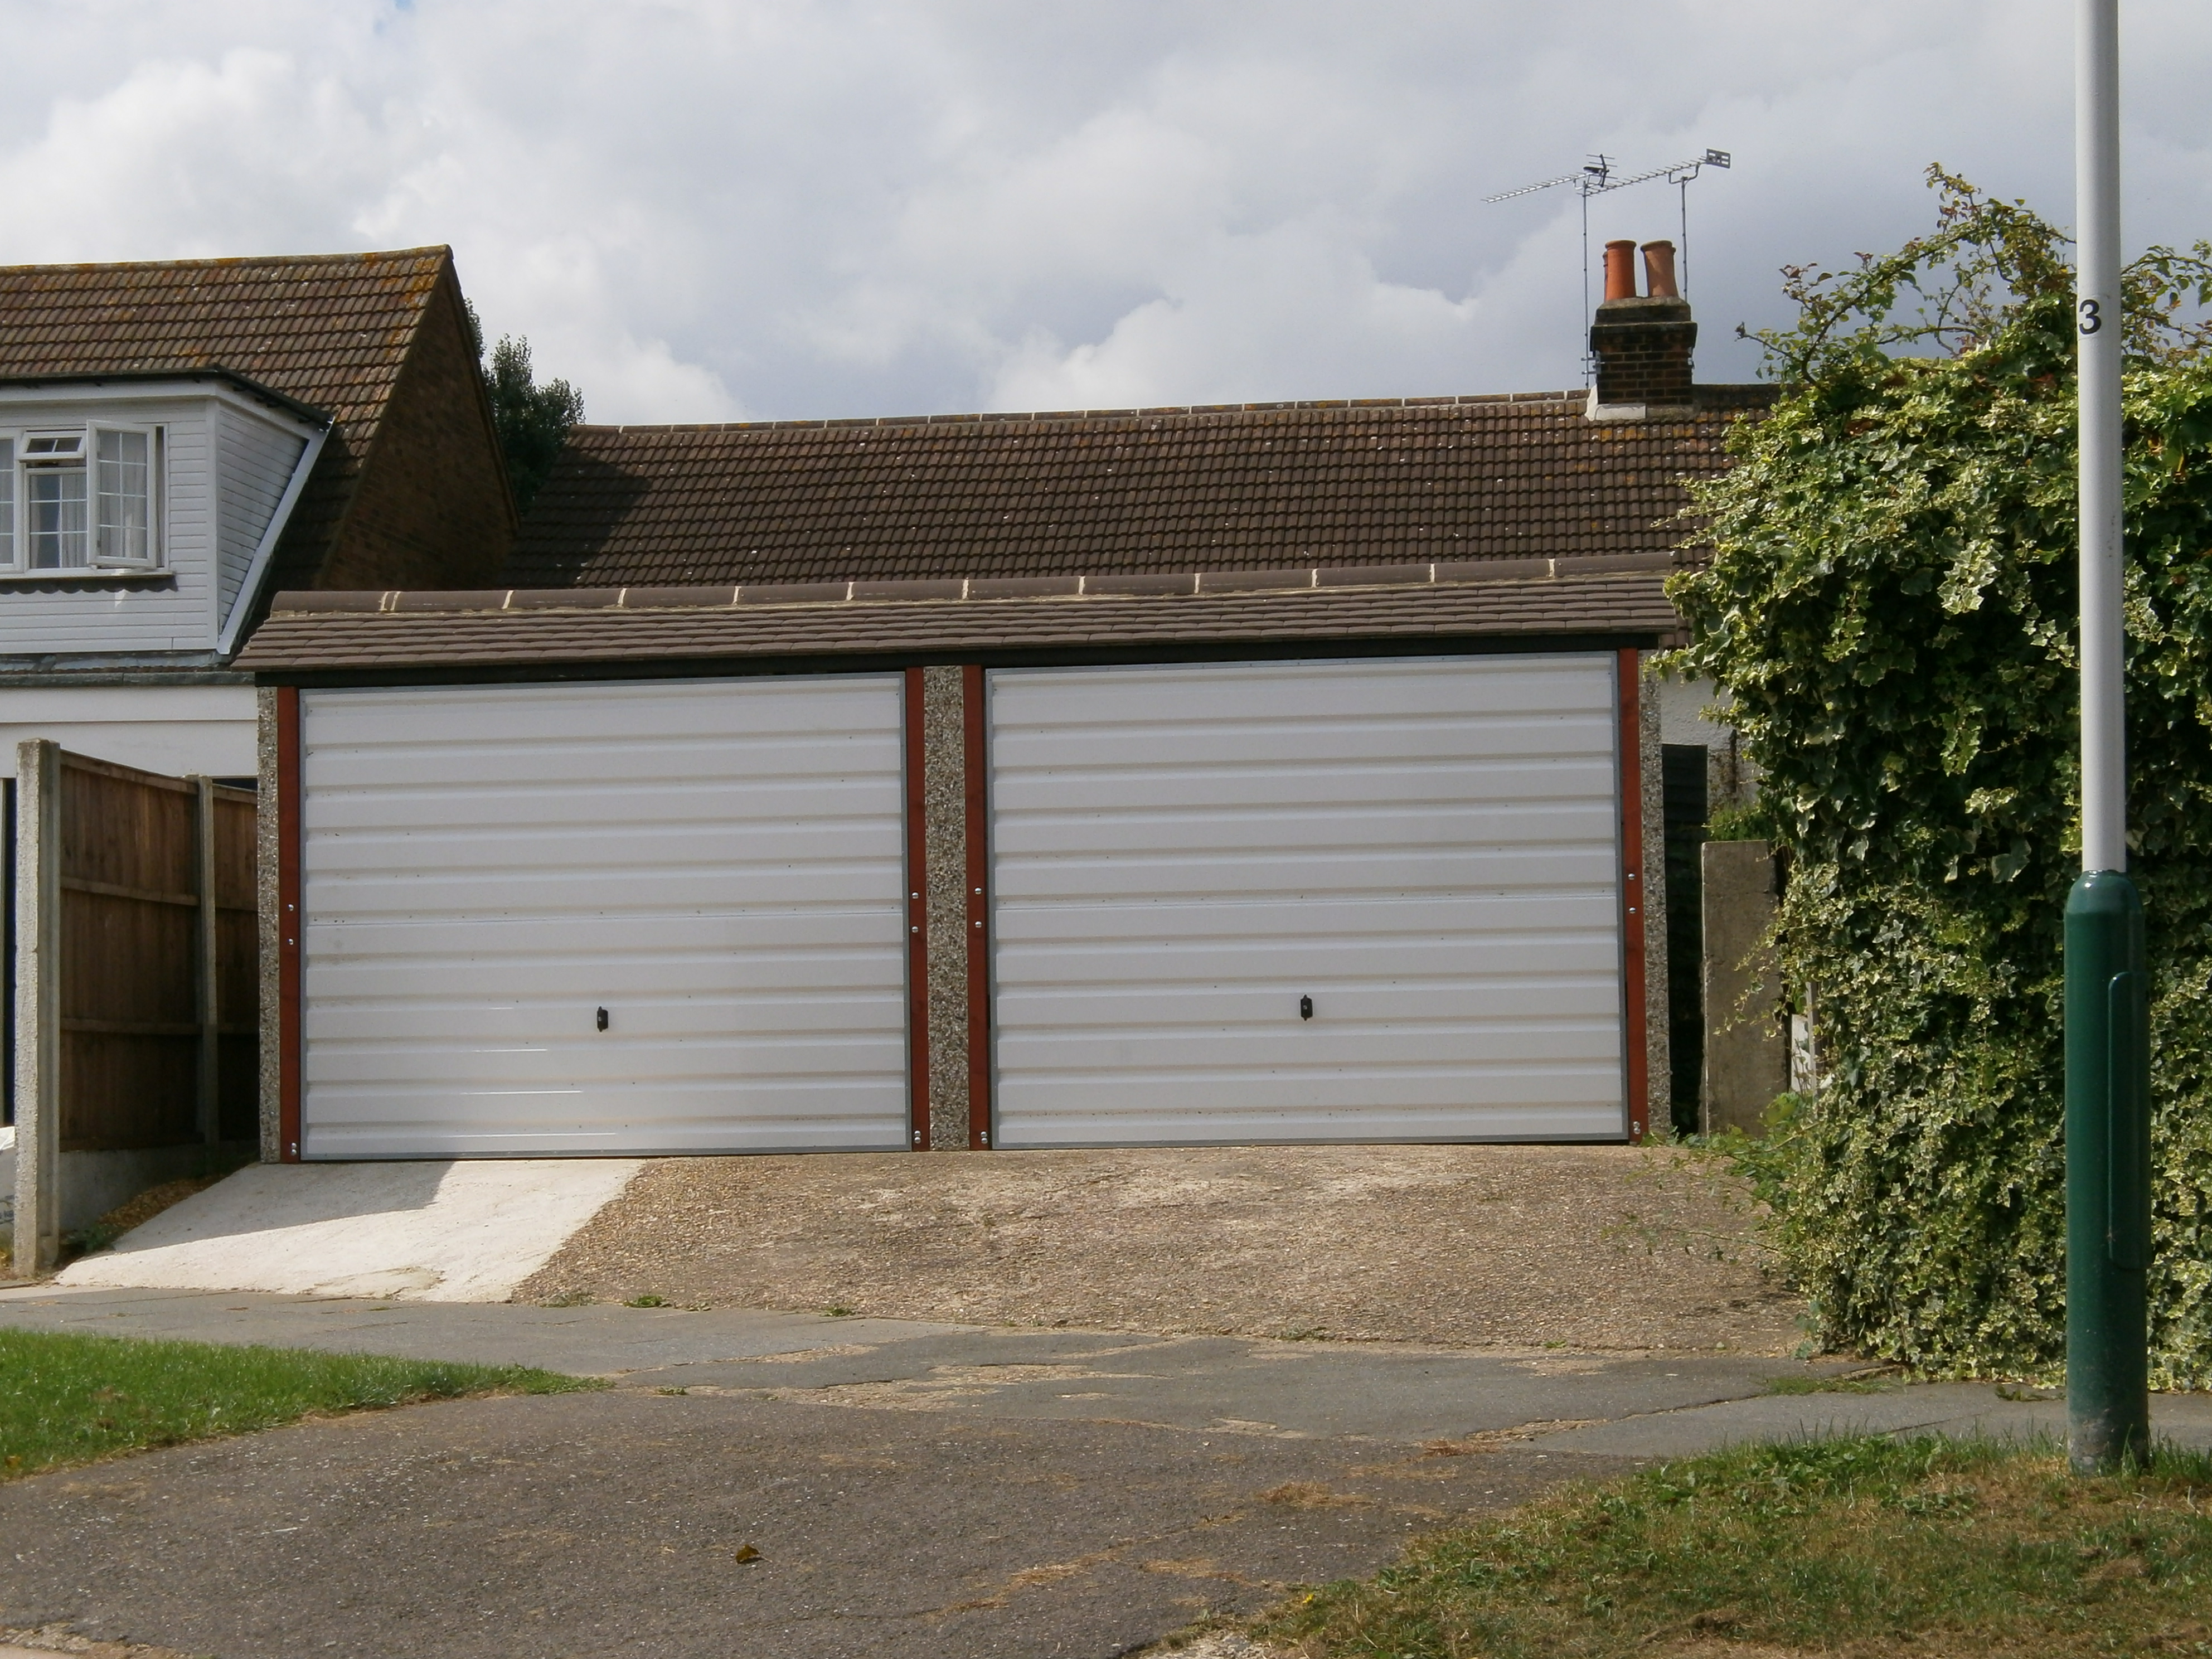 NEW HOMEPAGE PICTURE 3 - R. Page Concrete Buildings - A family run business since 1959